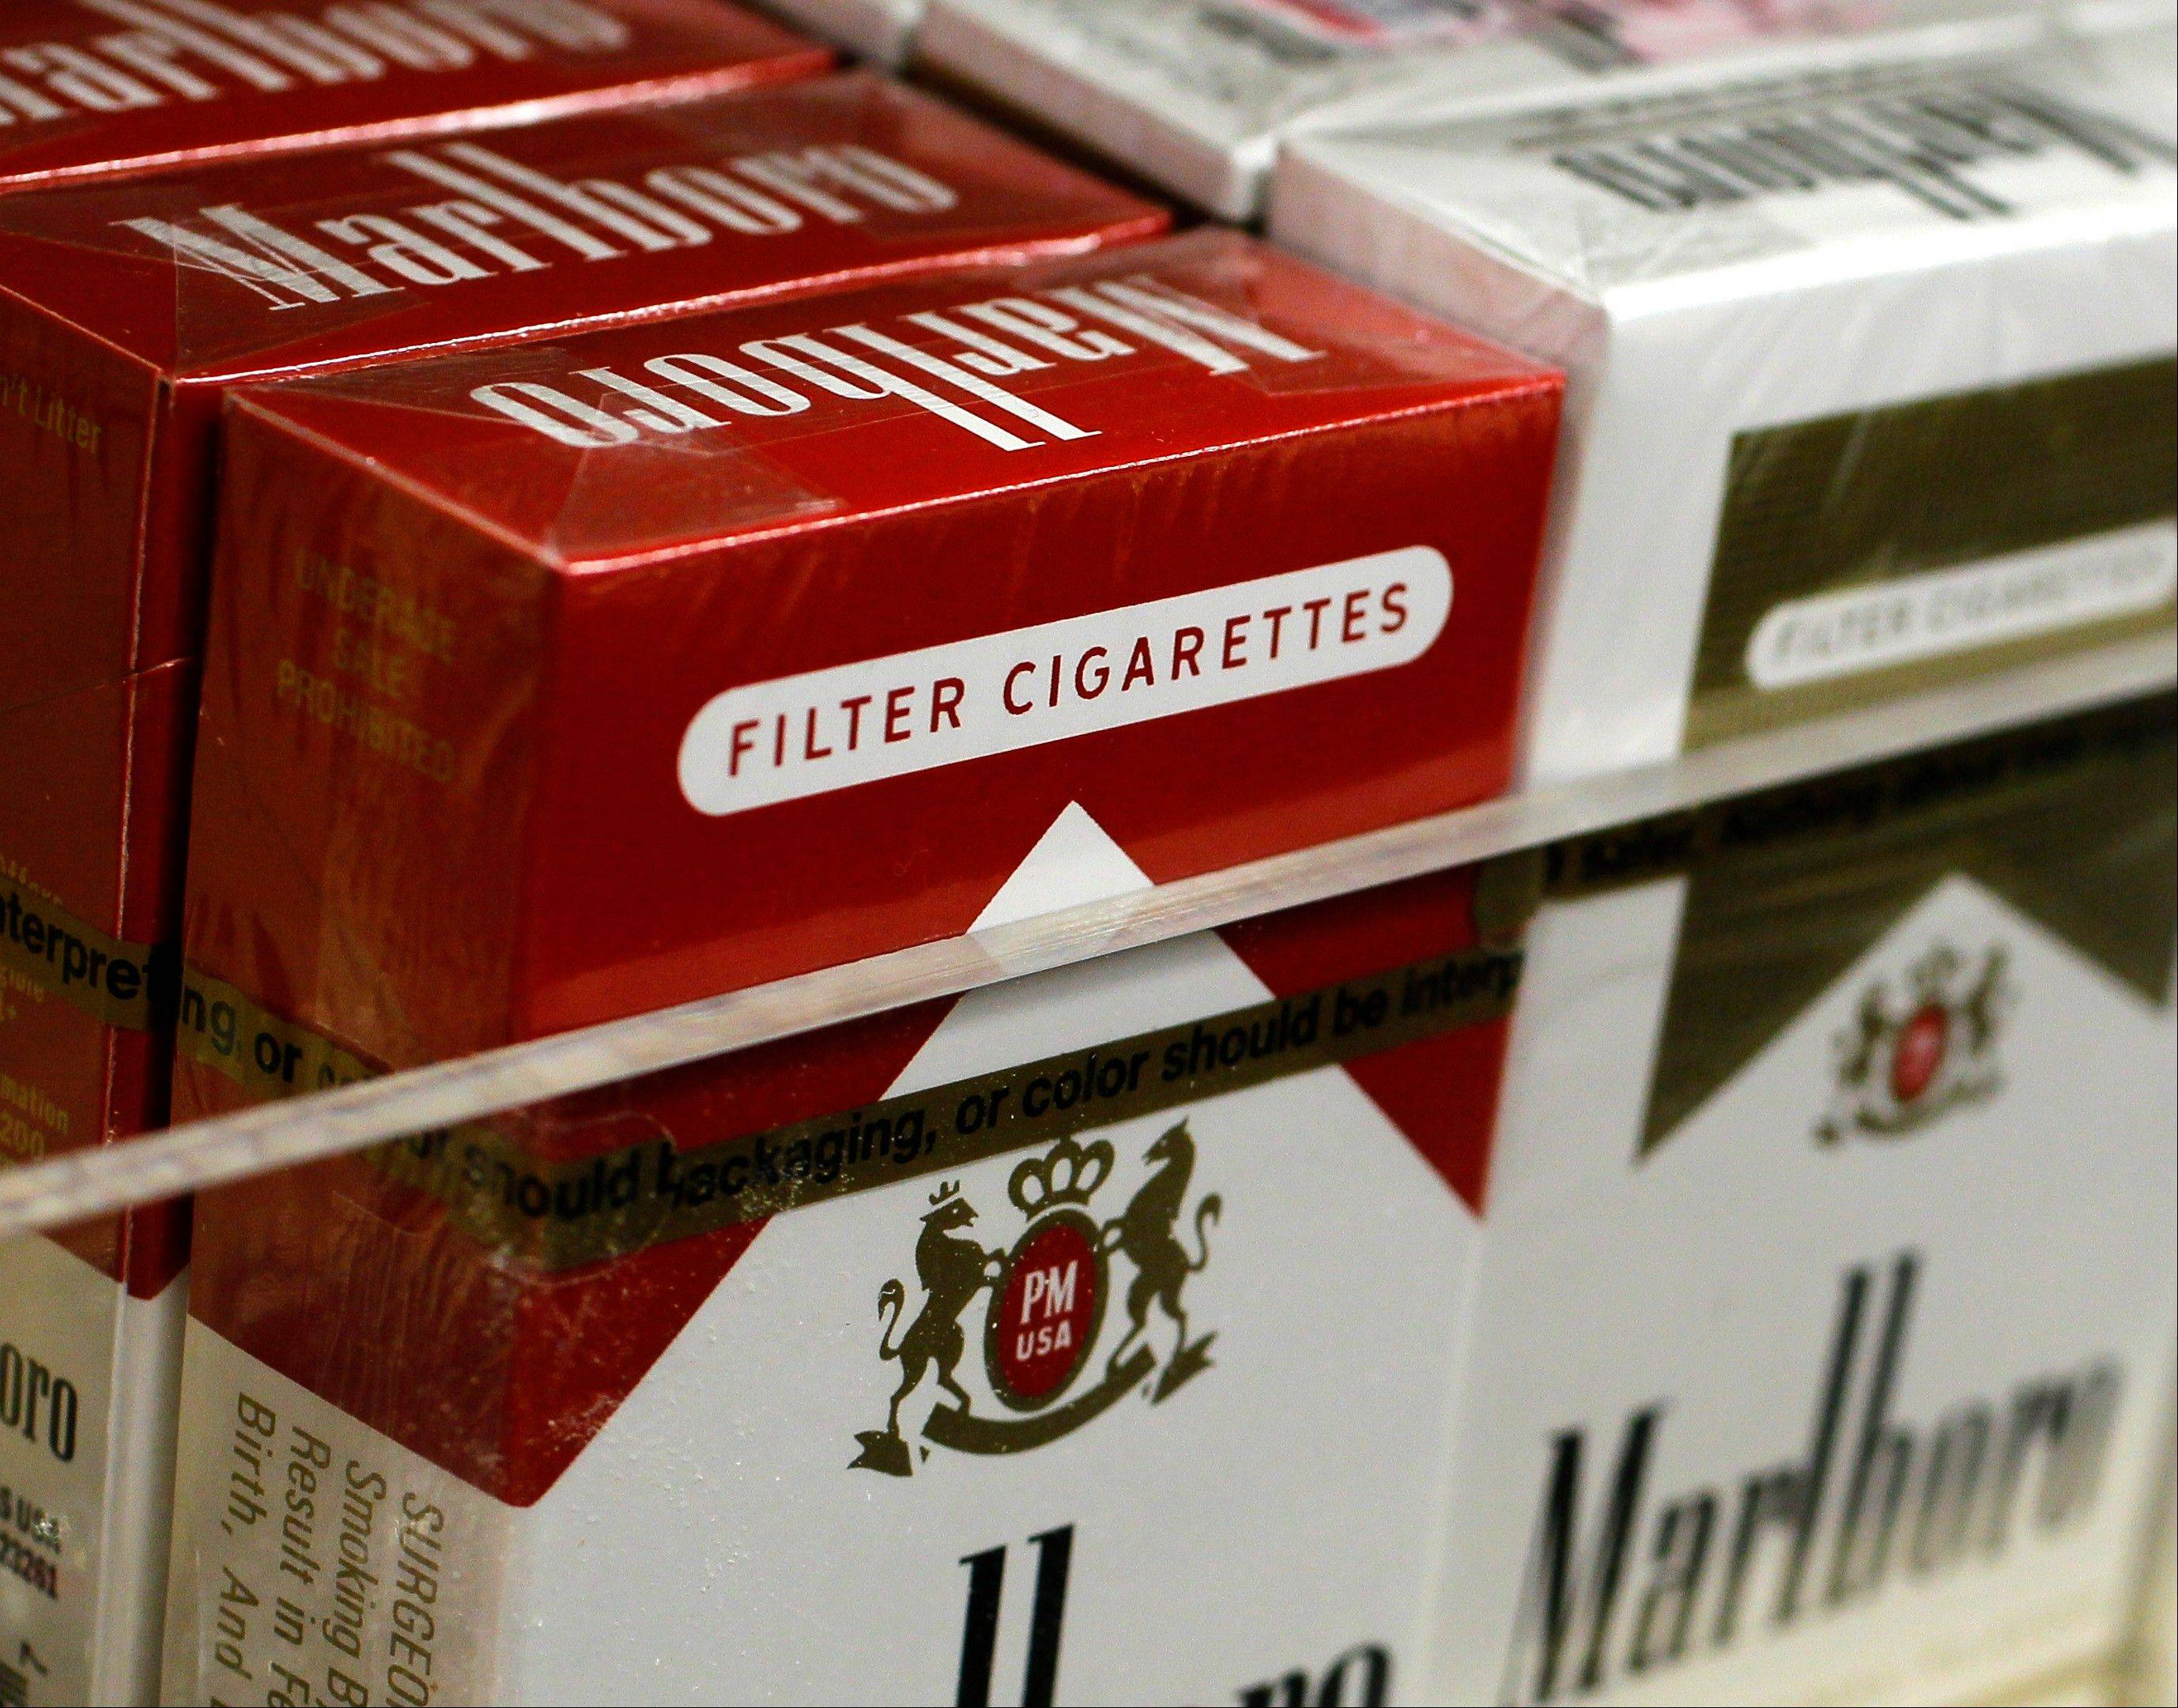 New statistics show that the sale of tobacco to minors in the U.S. were held near all-time lows last year under a federal-state inspection program intended to curb underage usage.